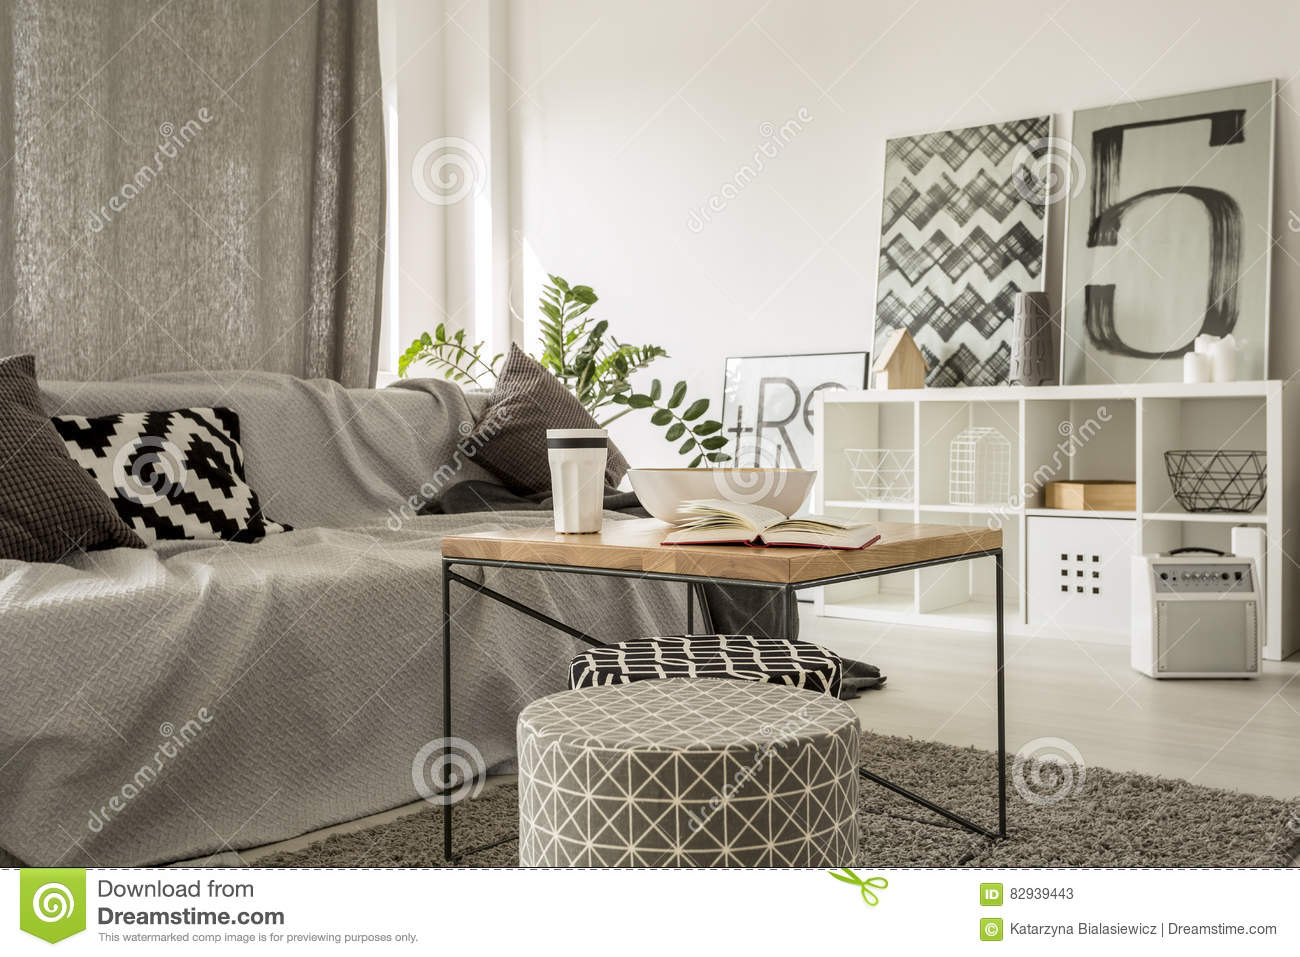 Table Basse Salon Moderne Table Basse En Bois Dans Le Salon Moderne Image Stock Image Du